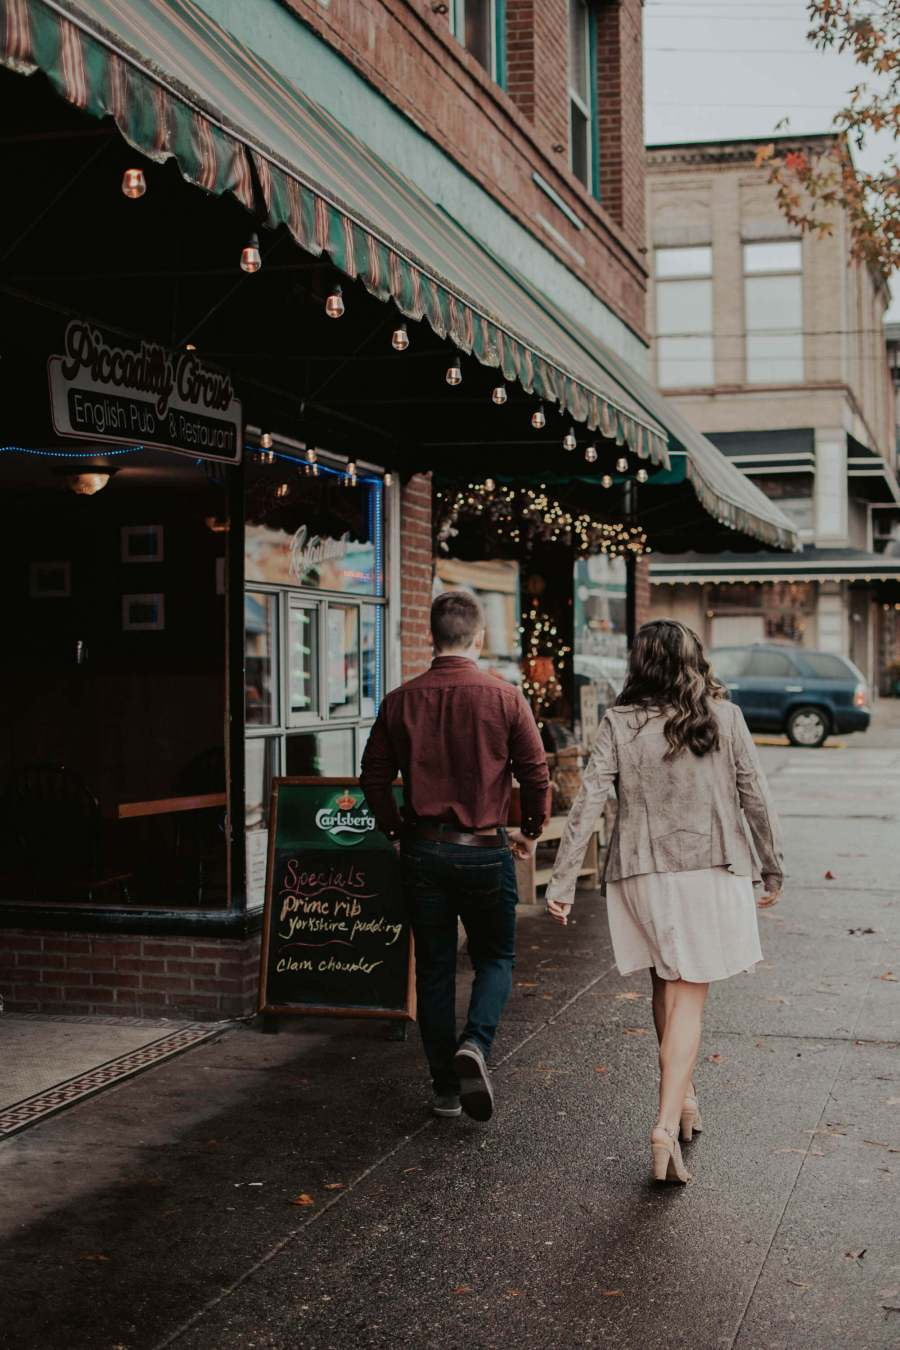 snohomish, engagement, photographer, wedding, seattle, engagement-session, downtown-snohomish, seattle-wedding-photographer, wedding-photographer, engagement-photographer, northwest, wedding-planning, wedding-plan, pnw, pacific-northwest, pacific-northwest-photographer,